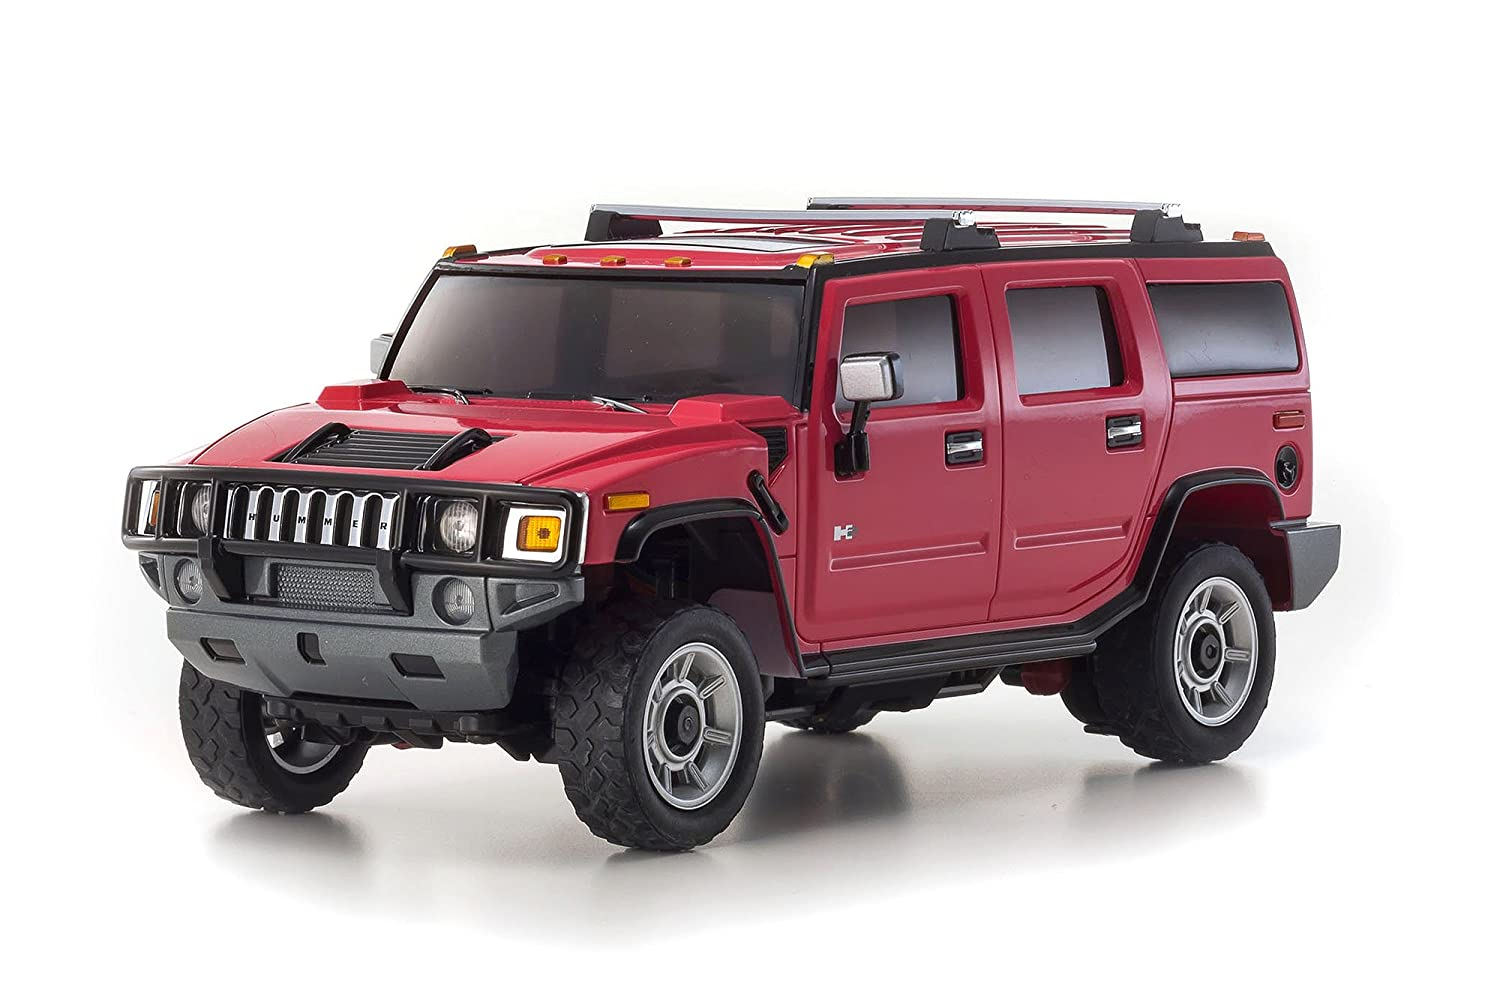 Amazon kyosho mini z overland sports rc hummer h2 truck blue amazon kyosho mini z overland sports rc hummer h2 truck blue toys games vanachro Image collections